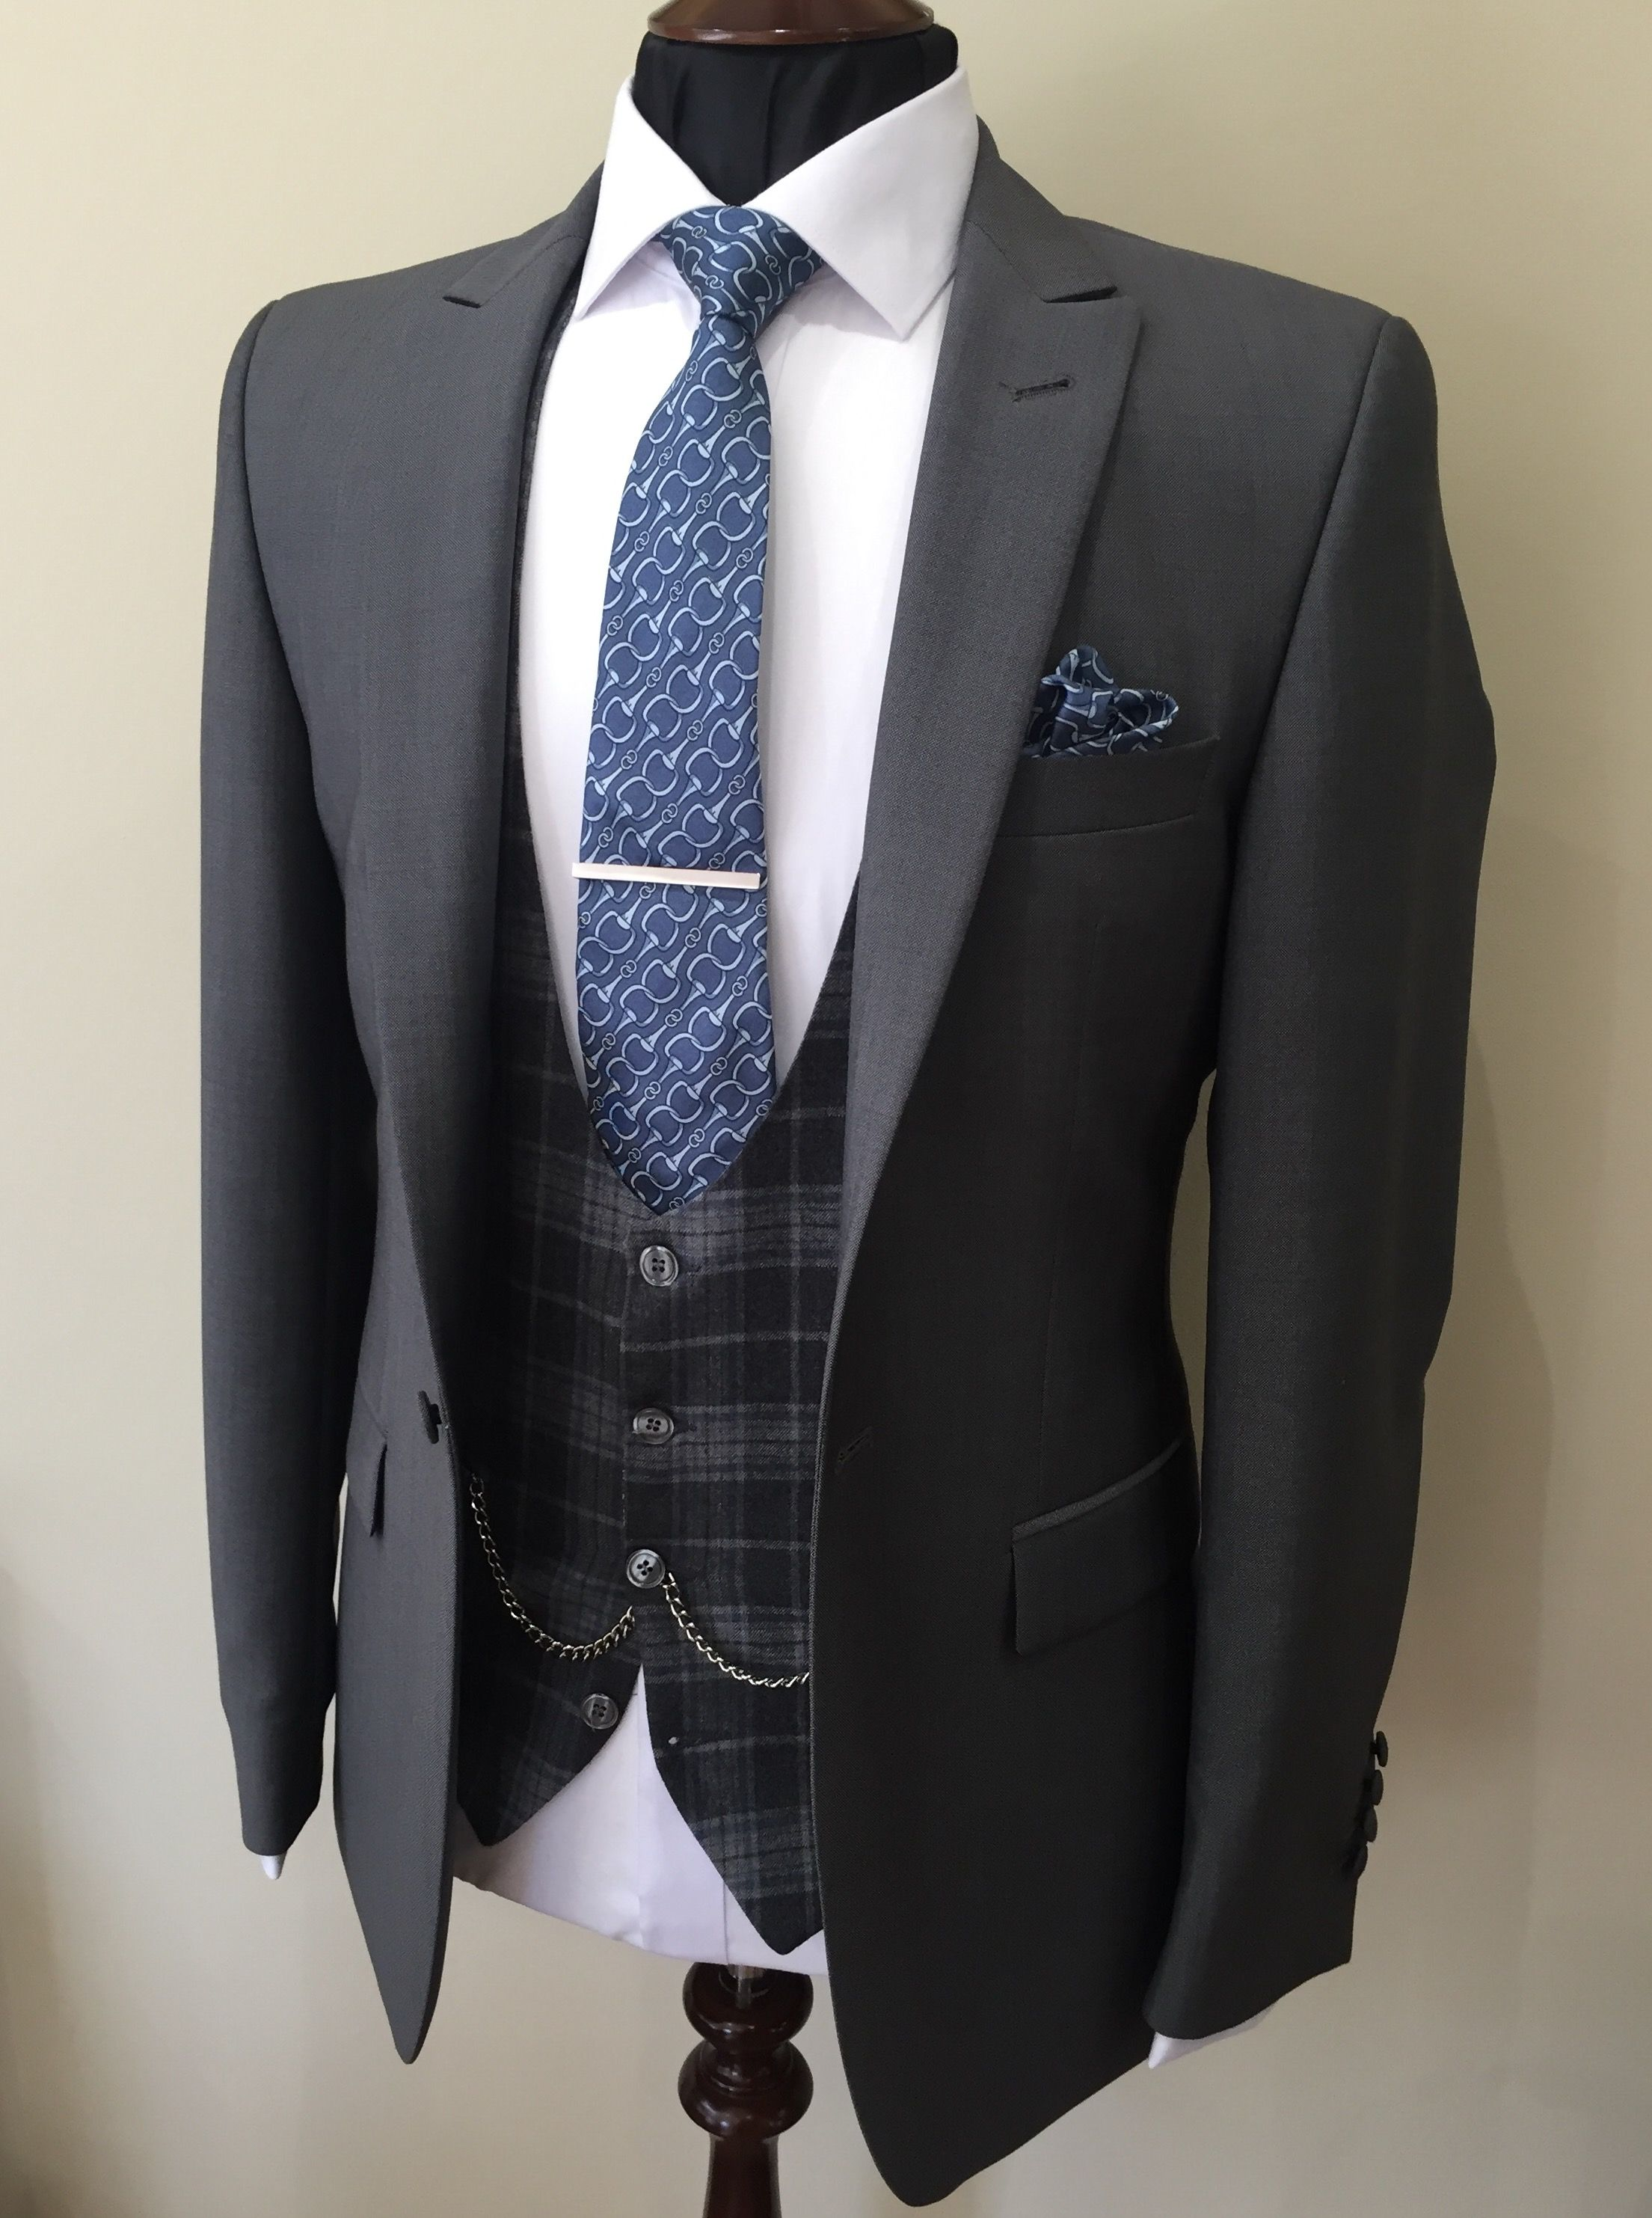 Slim Fit Grey Lounge Suit Grey Check Bow Waistcoat Groom Suit Wedding Suit Wedding Suits Men Wedding Suit Hire Vintage Wedding Suits